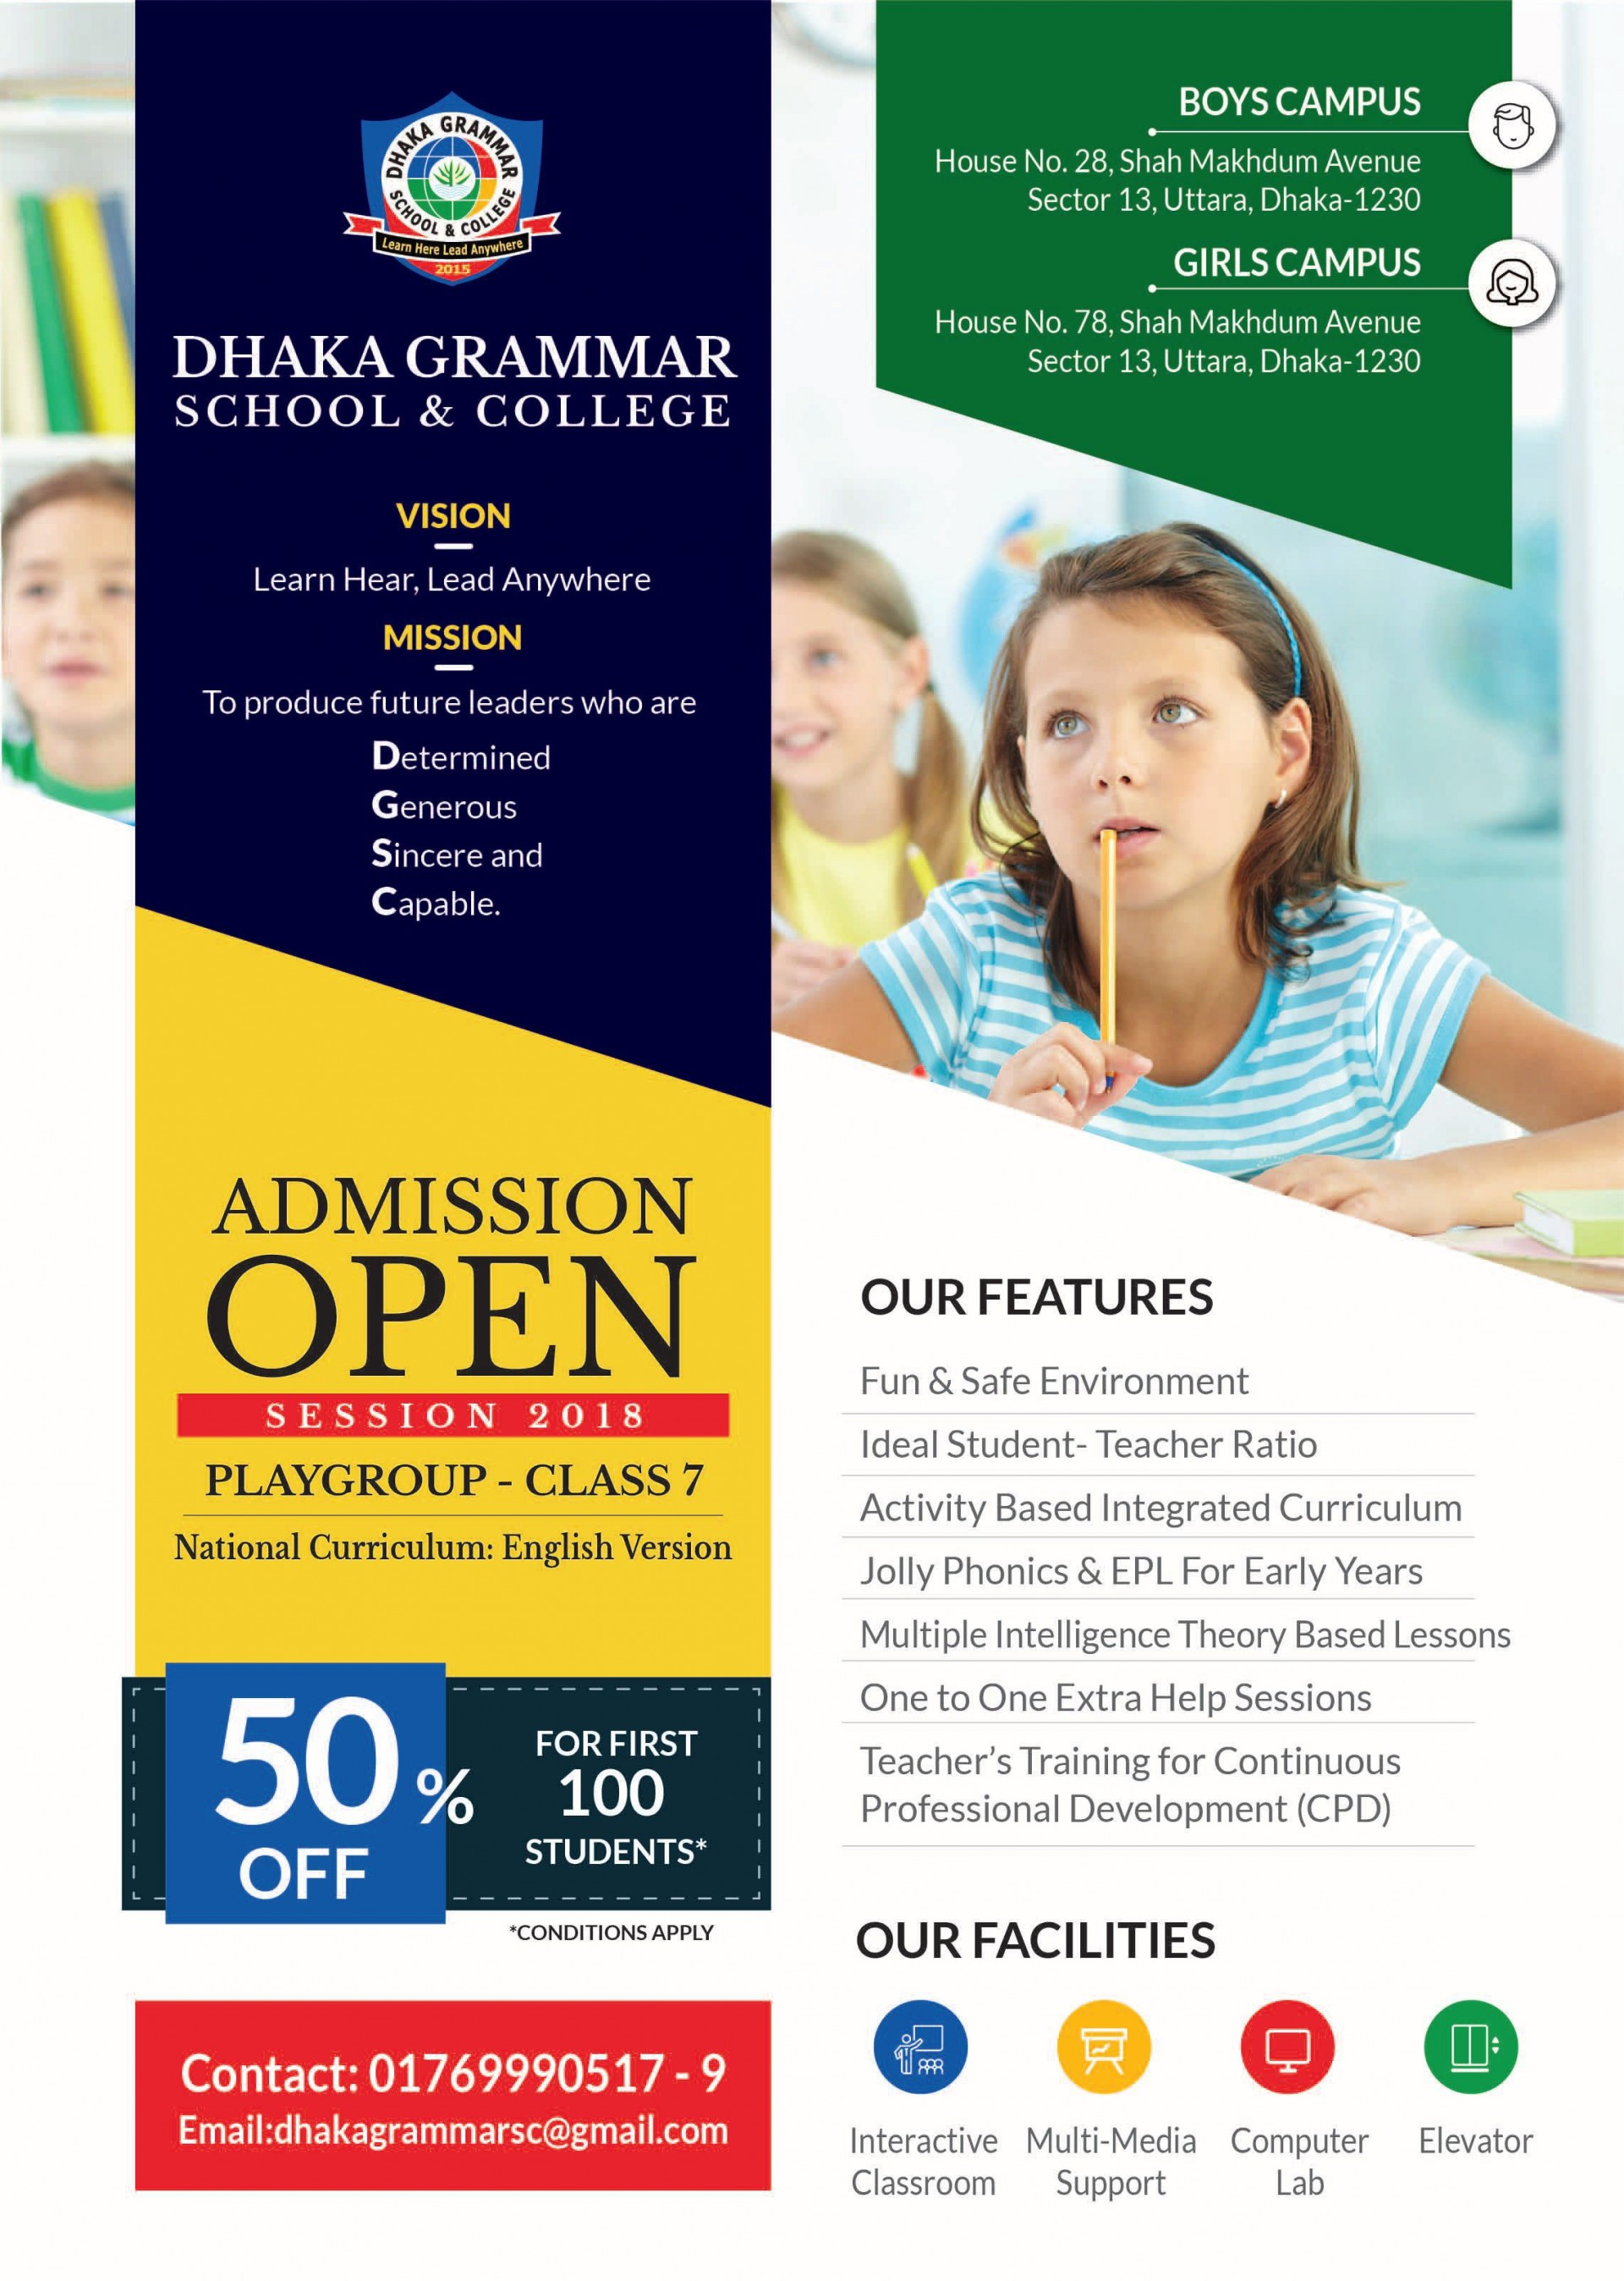 001 Outstanding School Open House Flyer Template Highest Clarity  Elementary Free Word1920